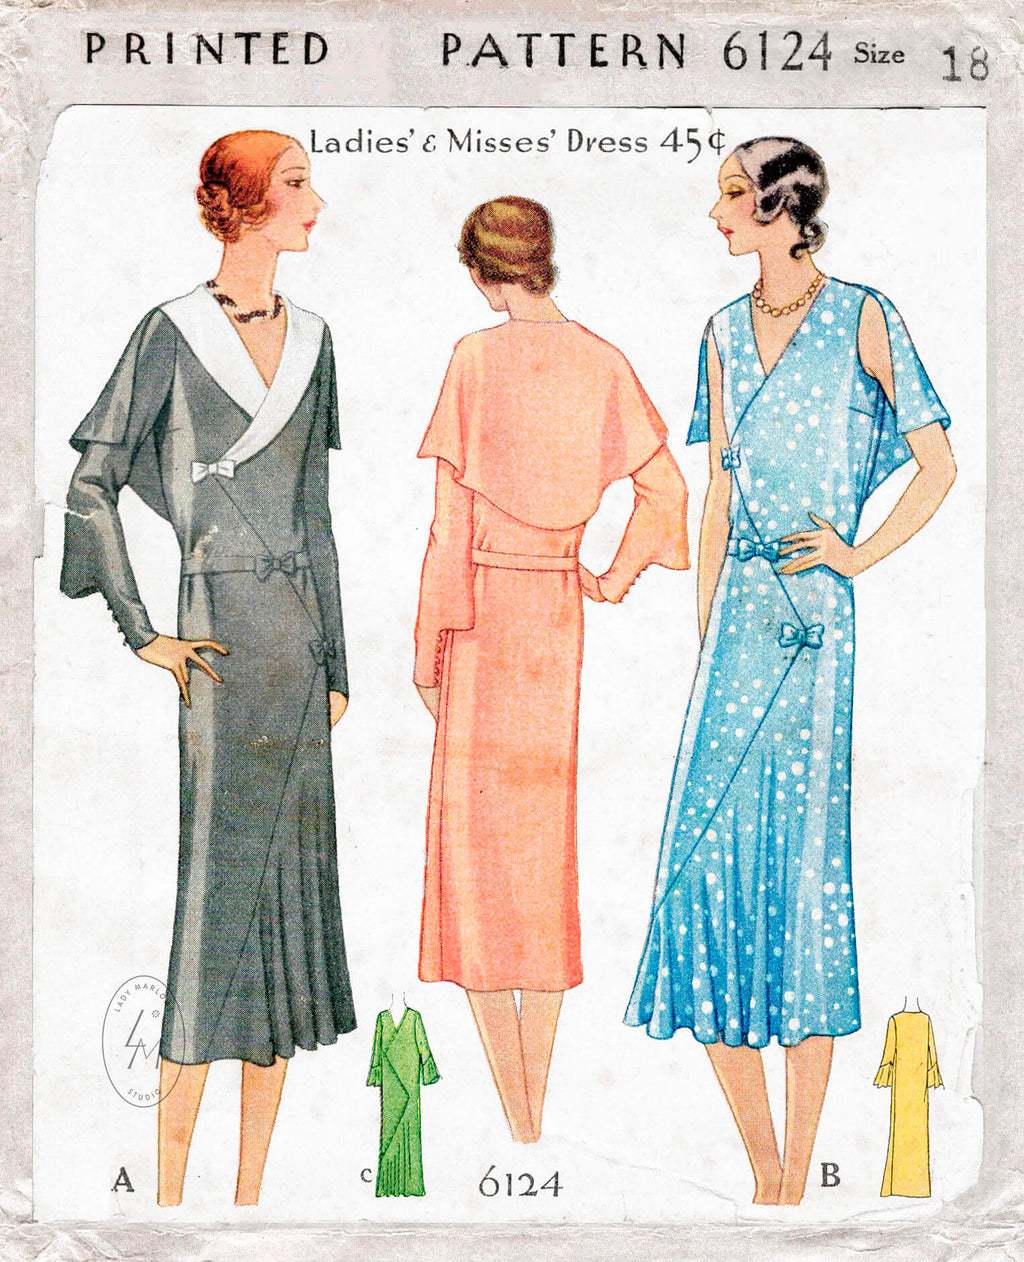 McCall 6124 1930s vintage sewing pattern dress in 3 styles with capelet